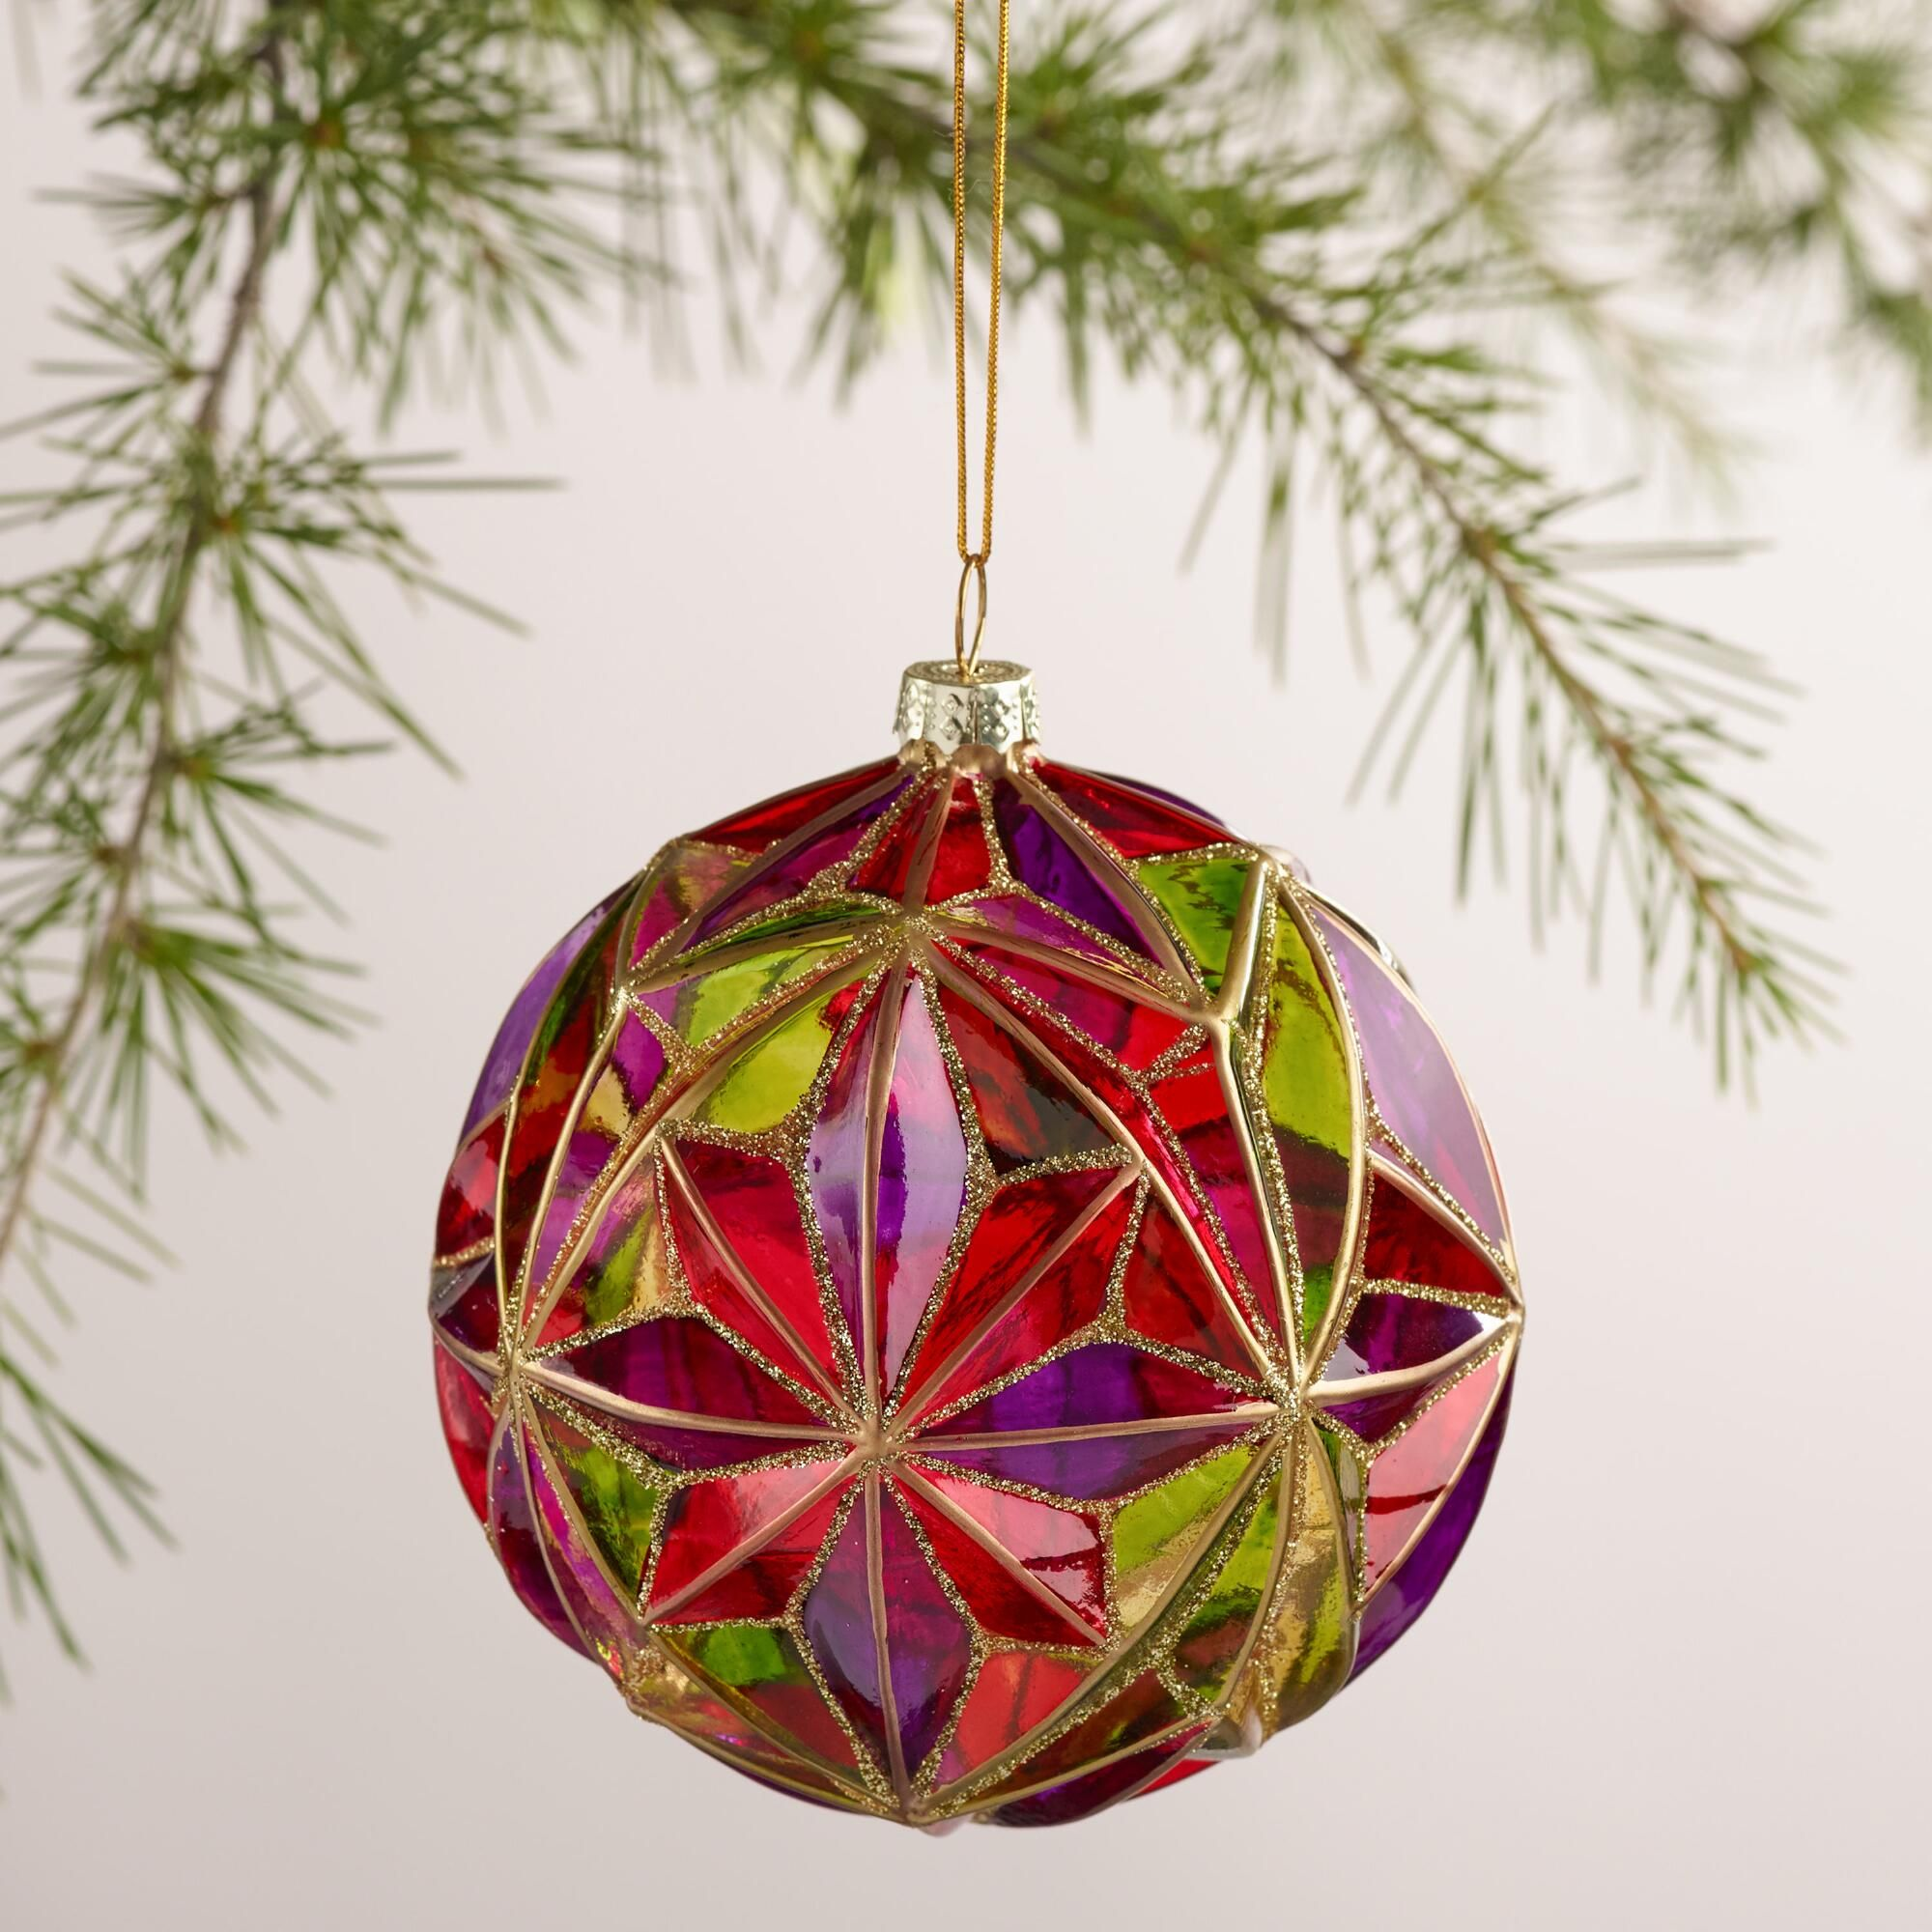 Decorative Christmas Ball Ornaments Multifaceted Glass Ball Ornament  World Market  Cool Ornaments